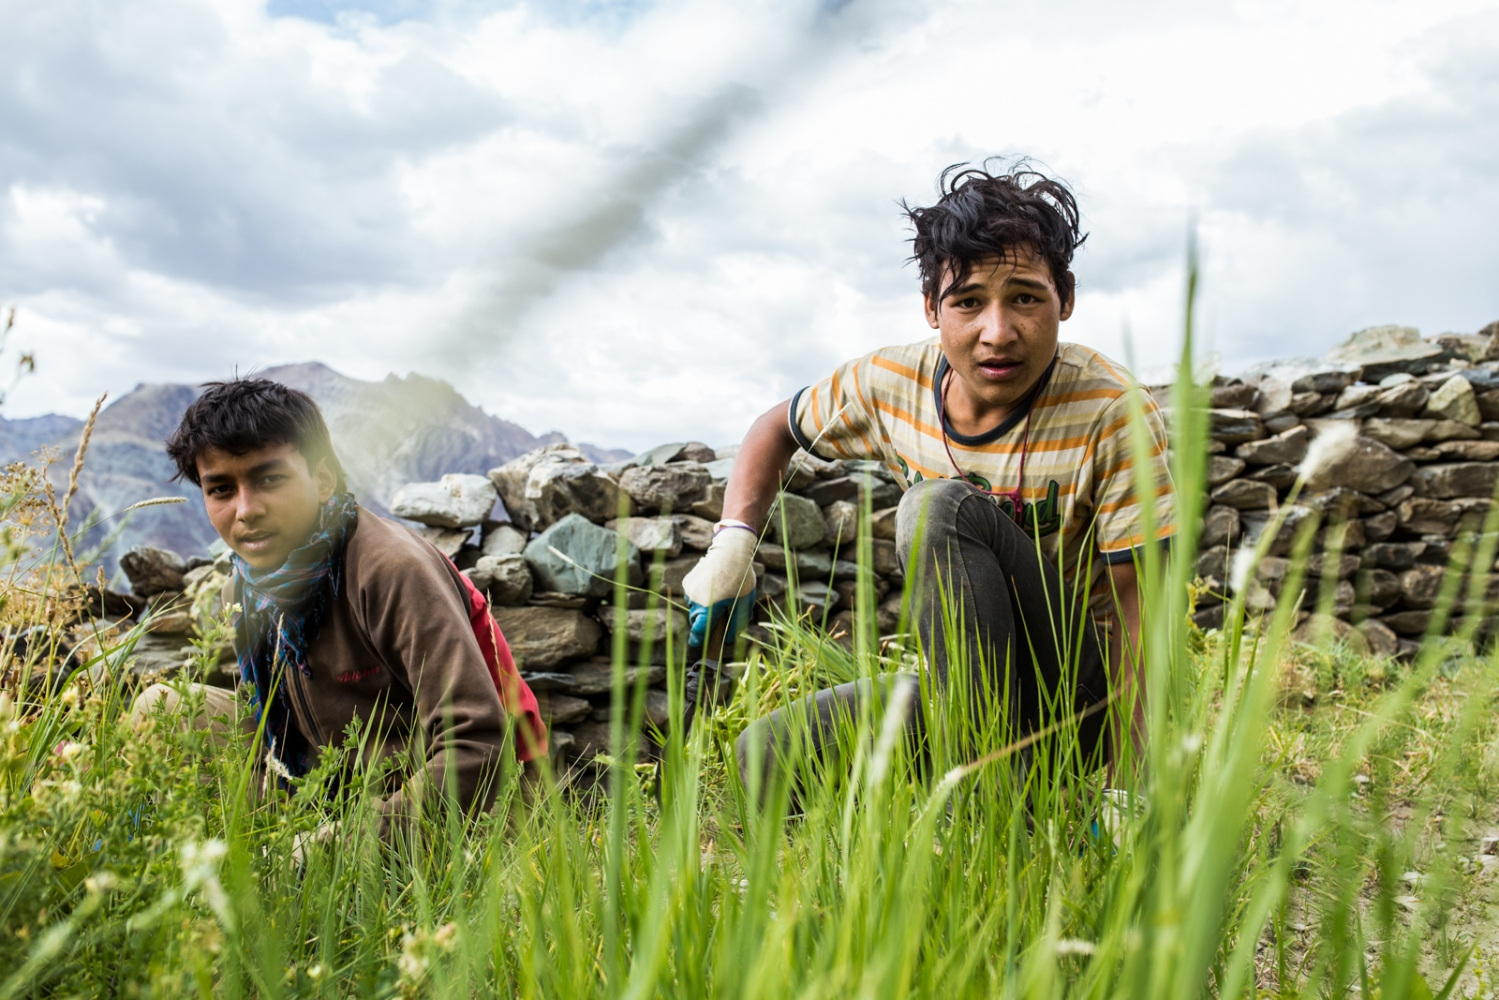 Young Nepali migrant workers hired to help tend to the farmland over the summer due to a shortage of young people in the village. Most young people of Kumik are studying in large Indian cities such as New Delhi and Jammu.